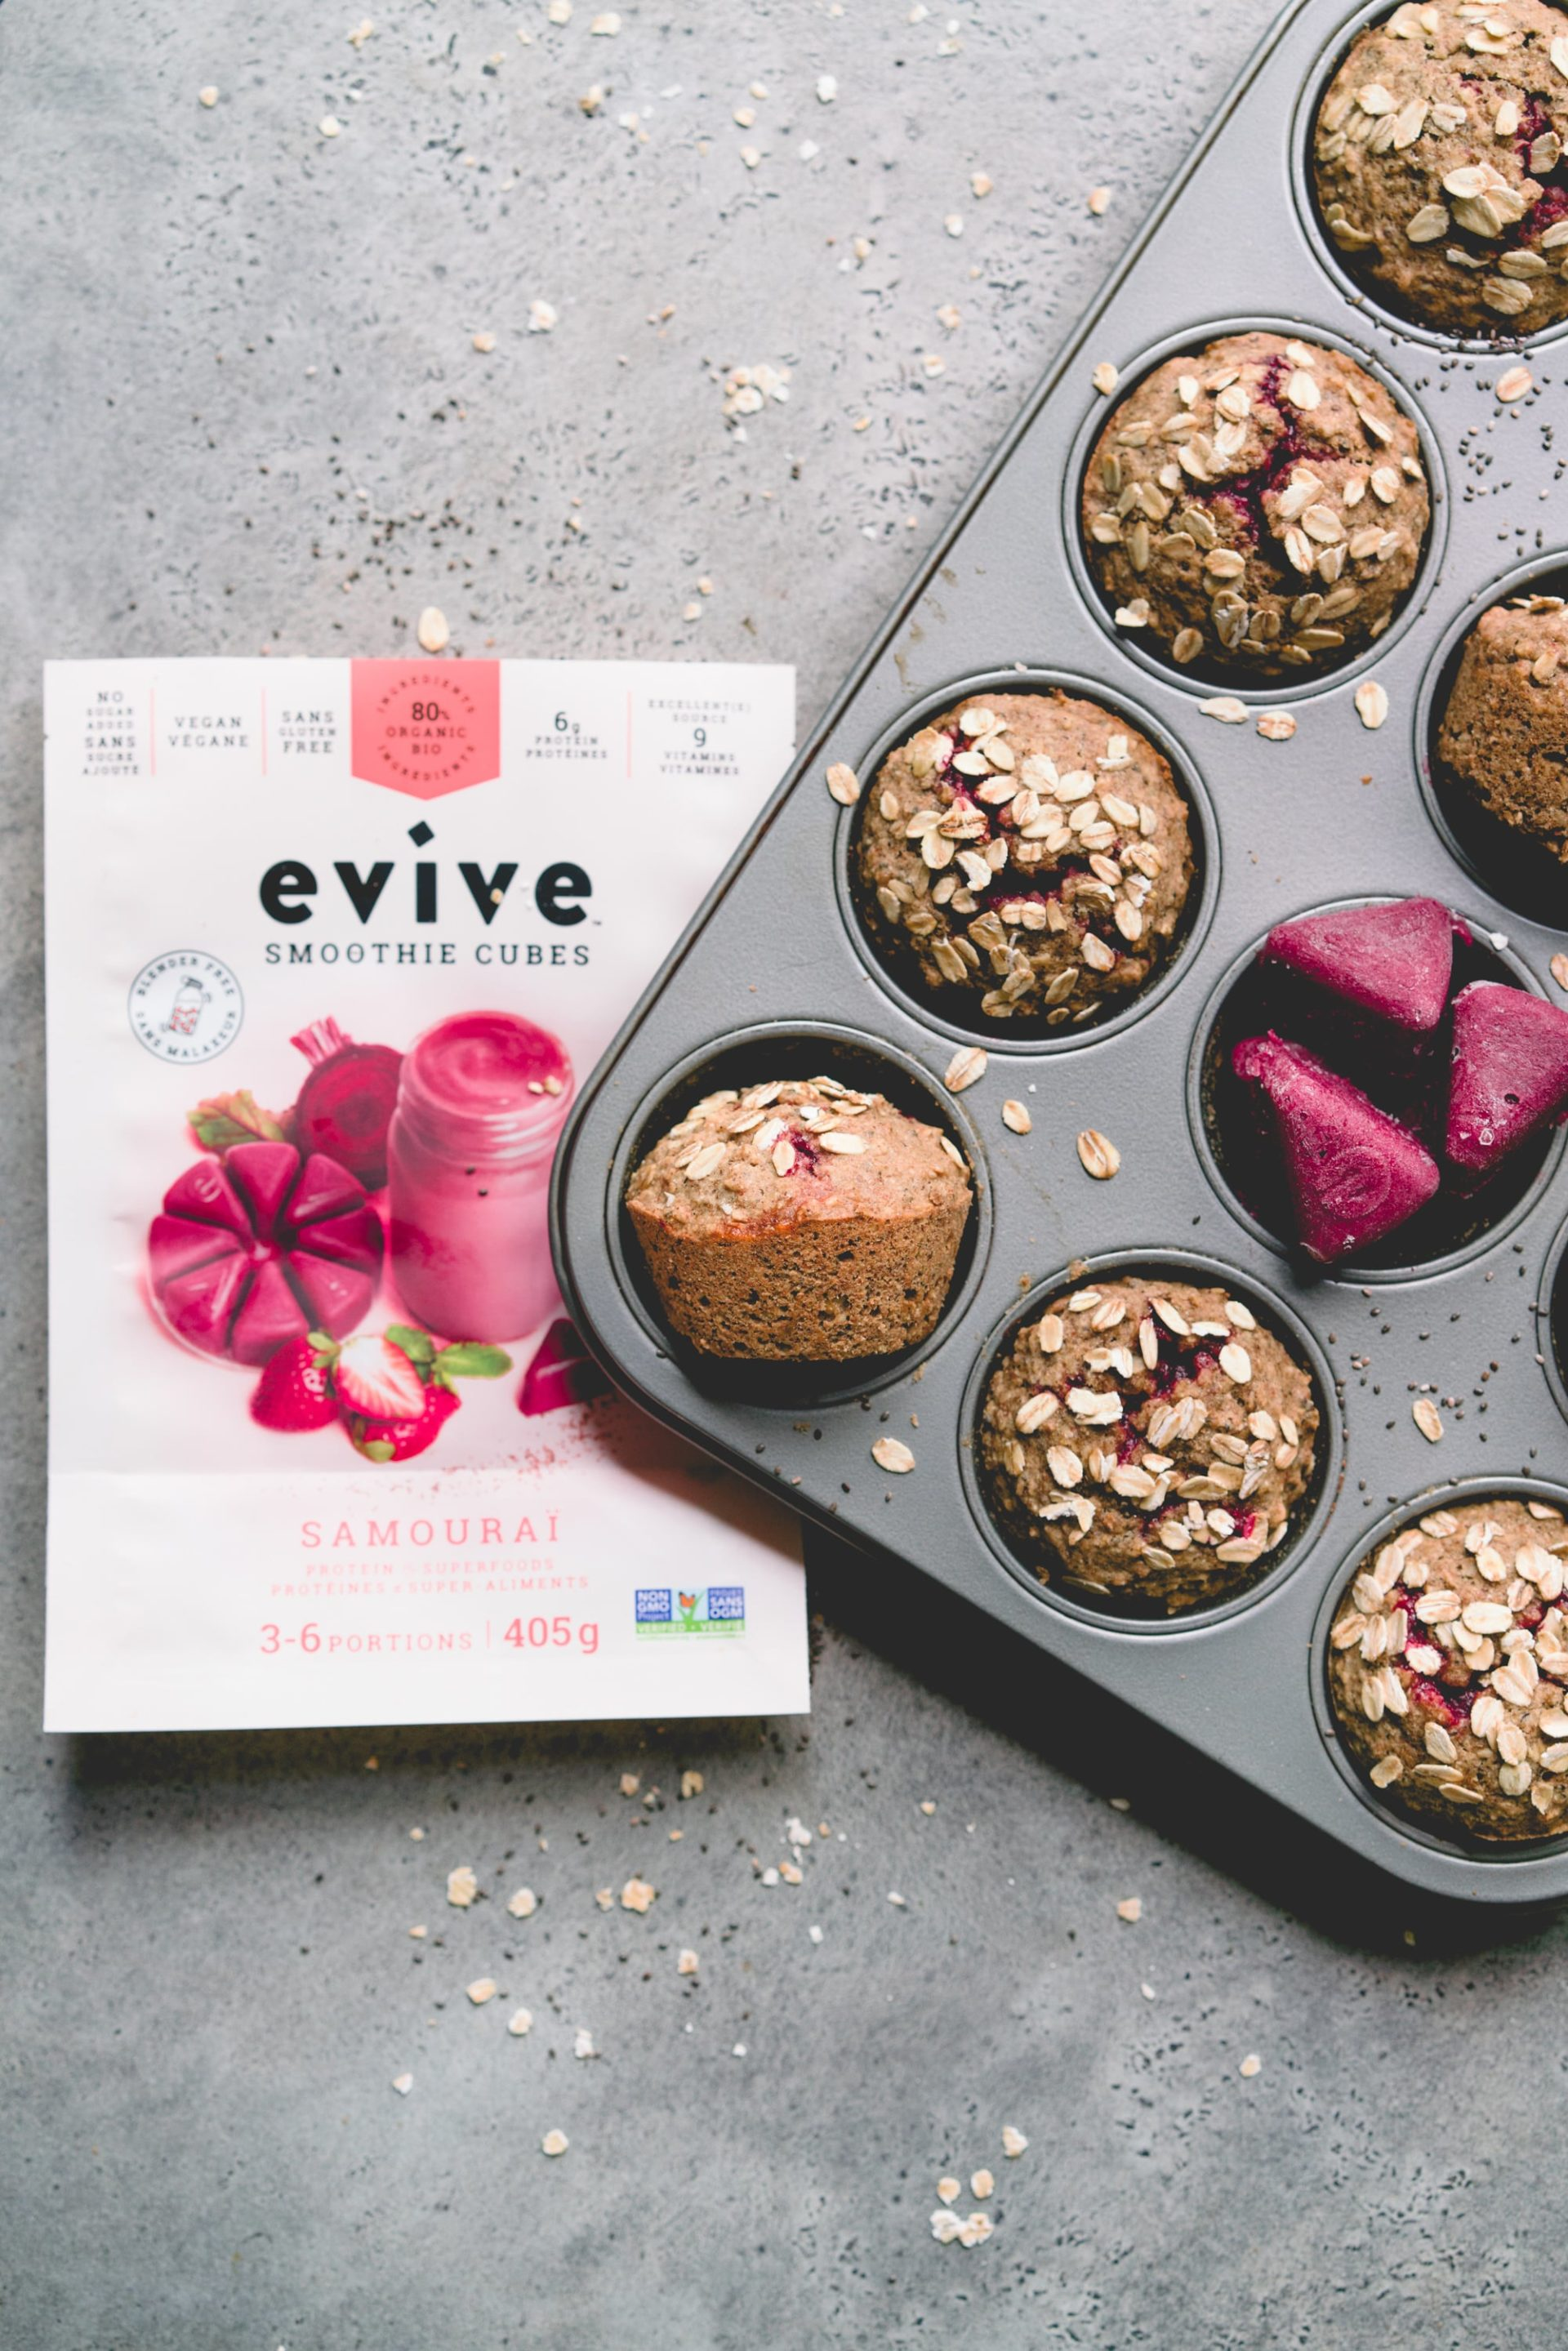 Evive muffins